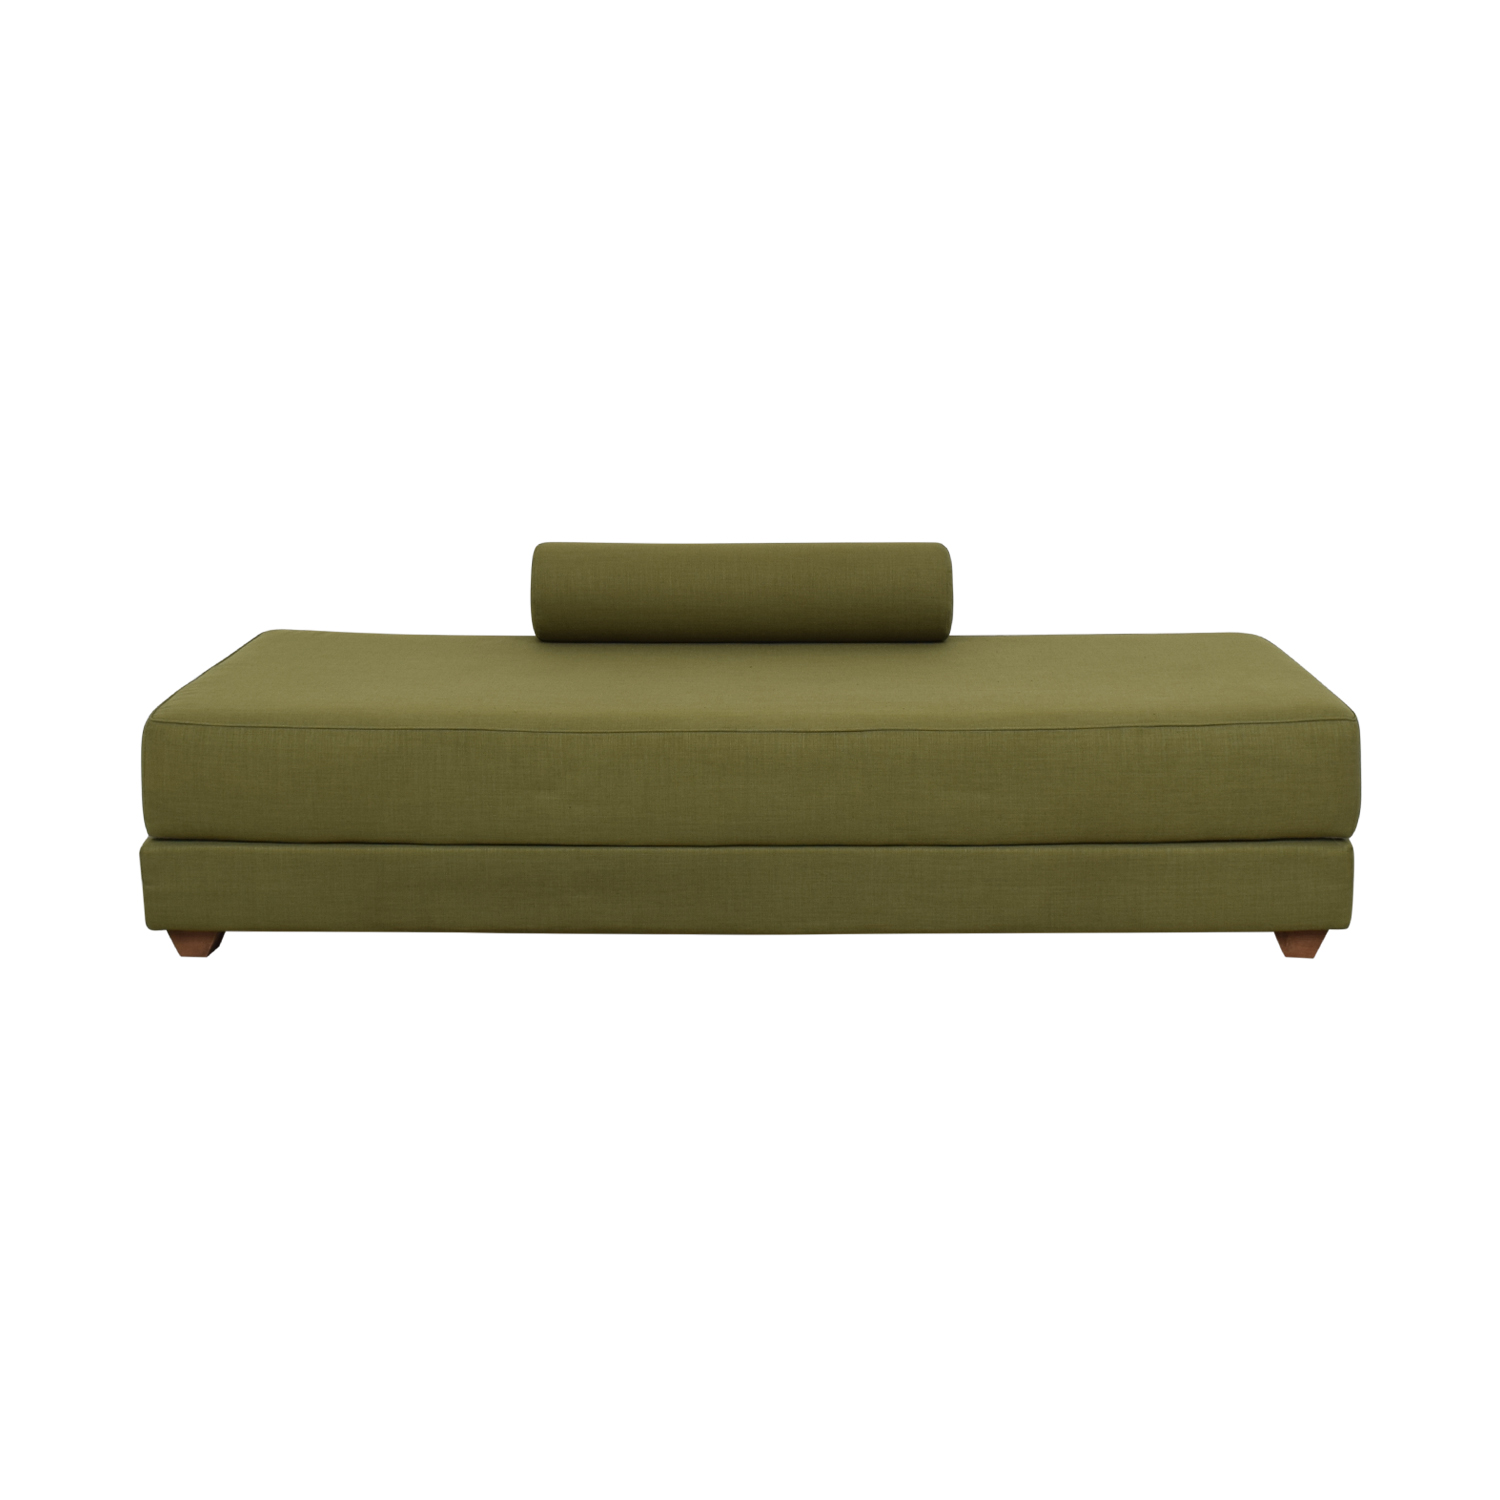 CB2 CB2 Green Lubi Daybed used